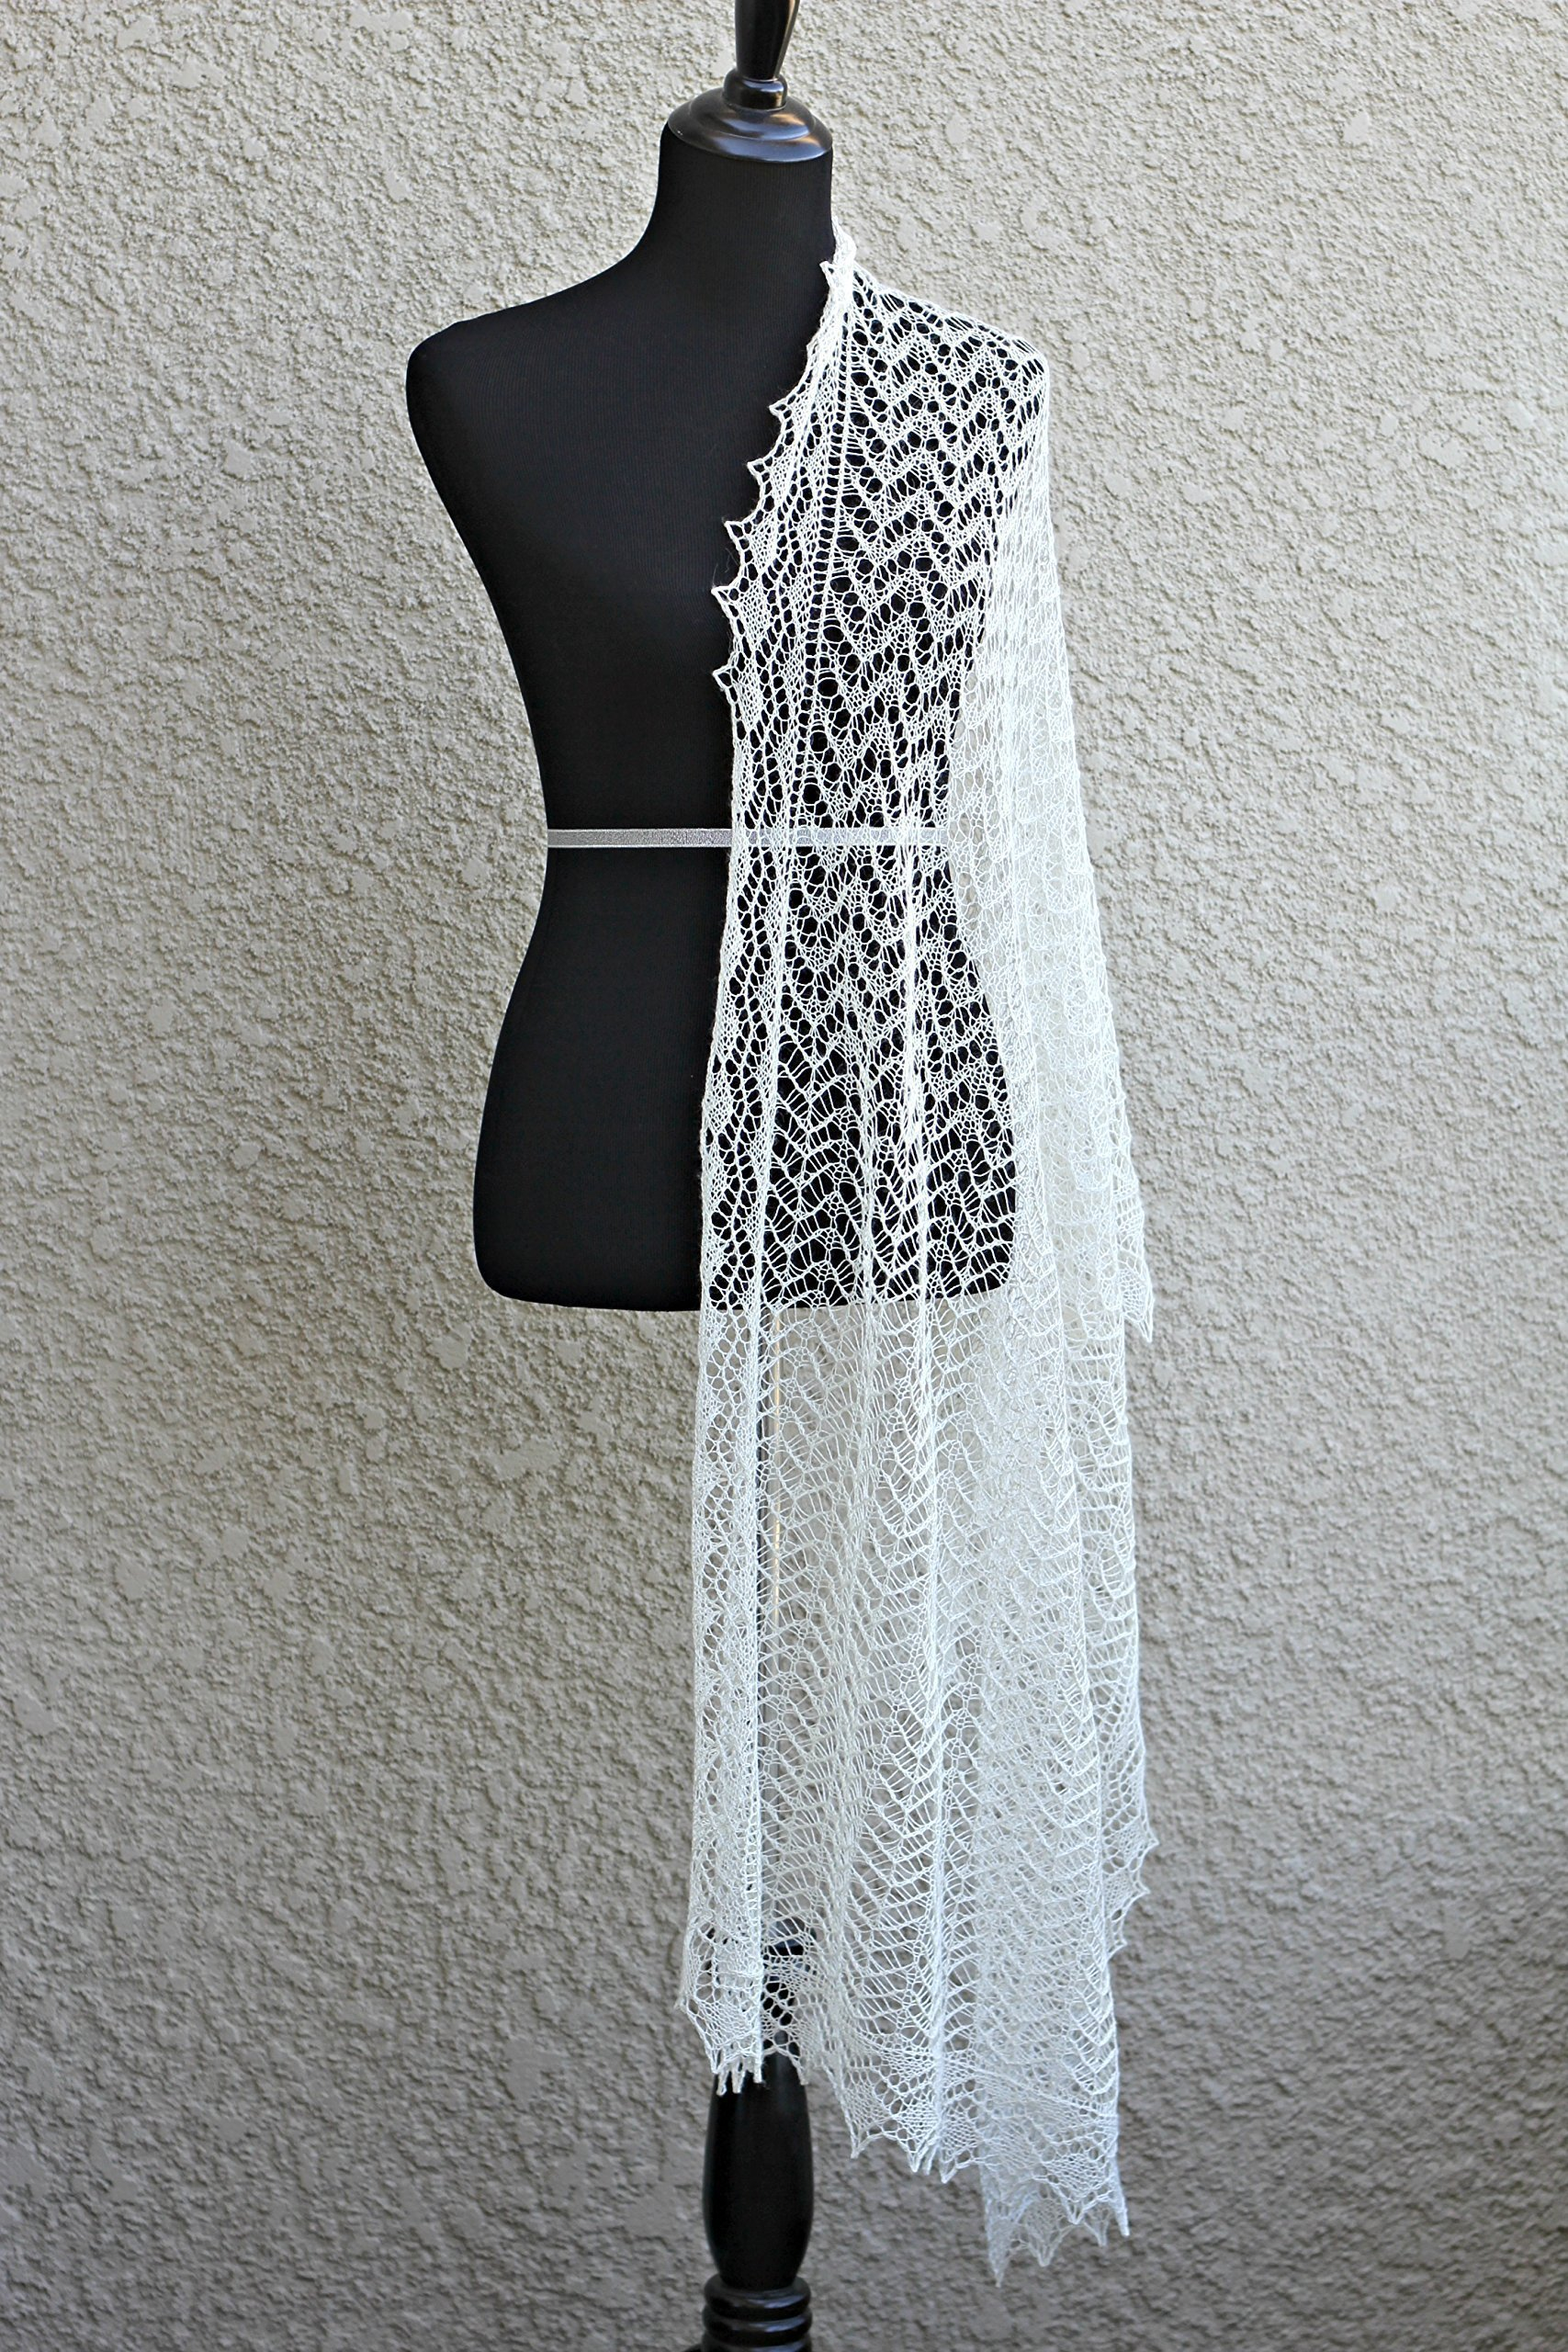 Knit wedding shawl with laced body and border